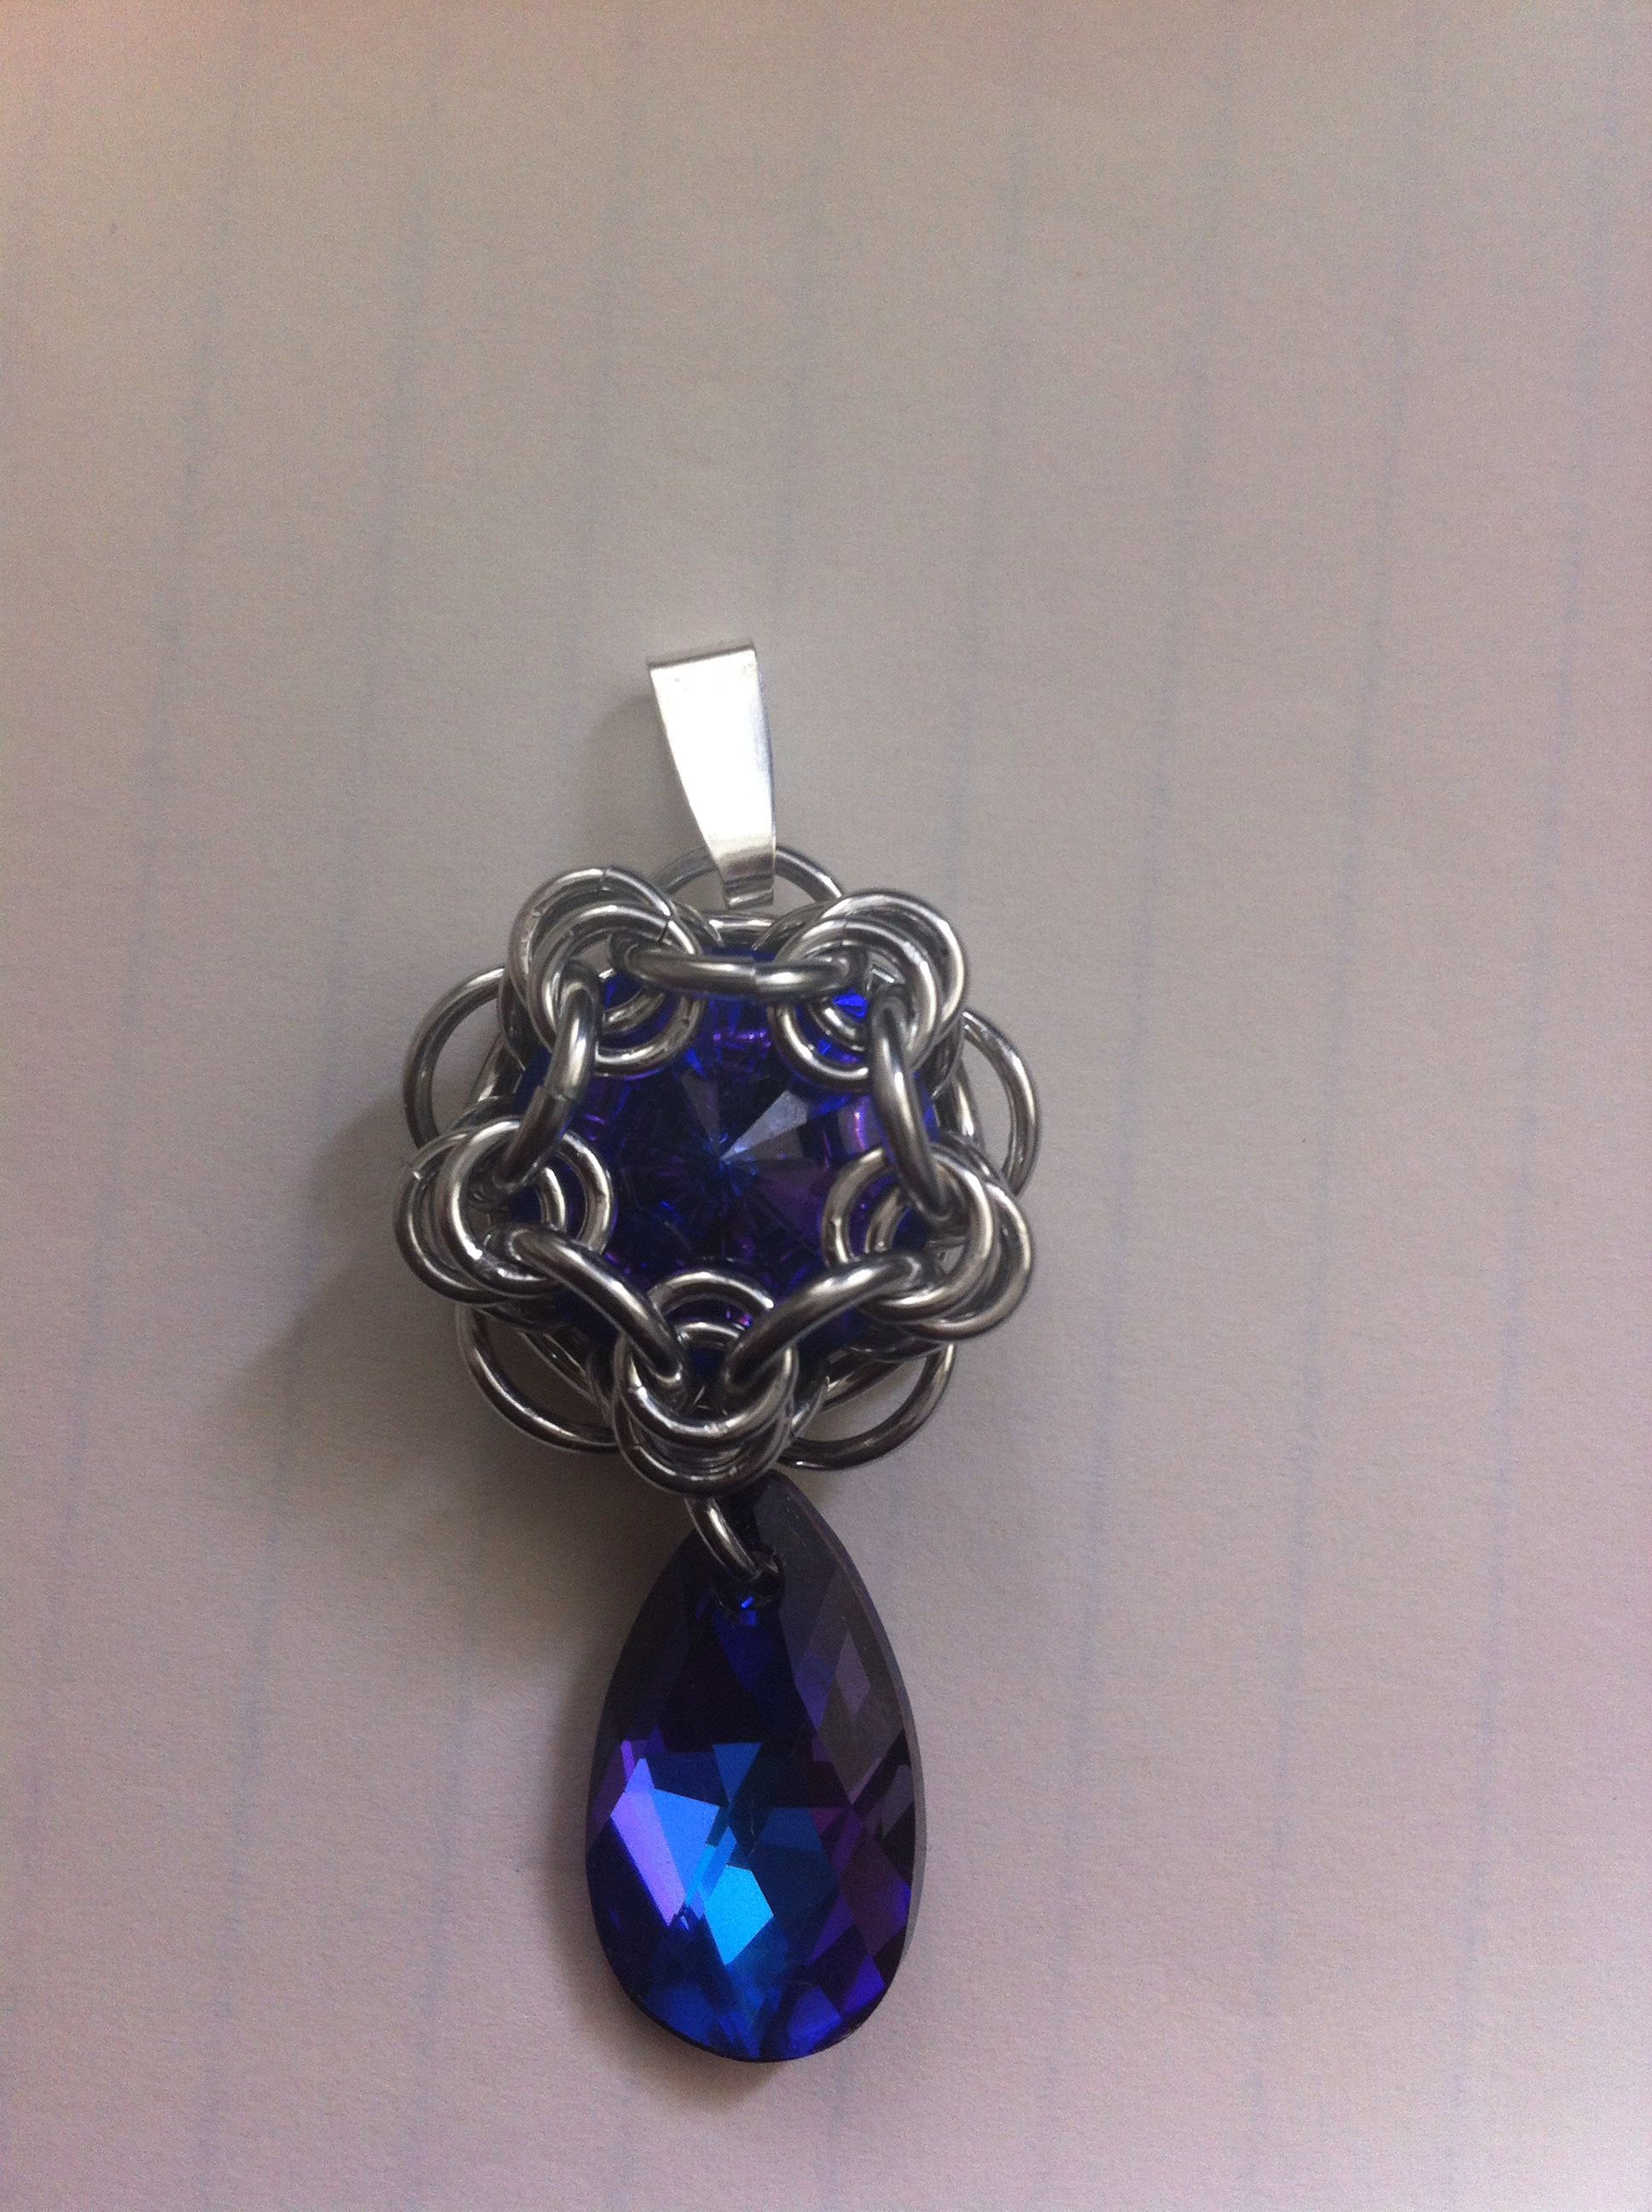 68846d9207a4b Heliotrope swarovski rivoli wrapped in chainmaille with matching ...